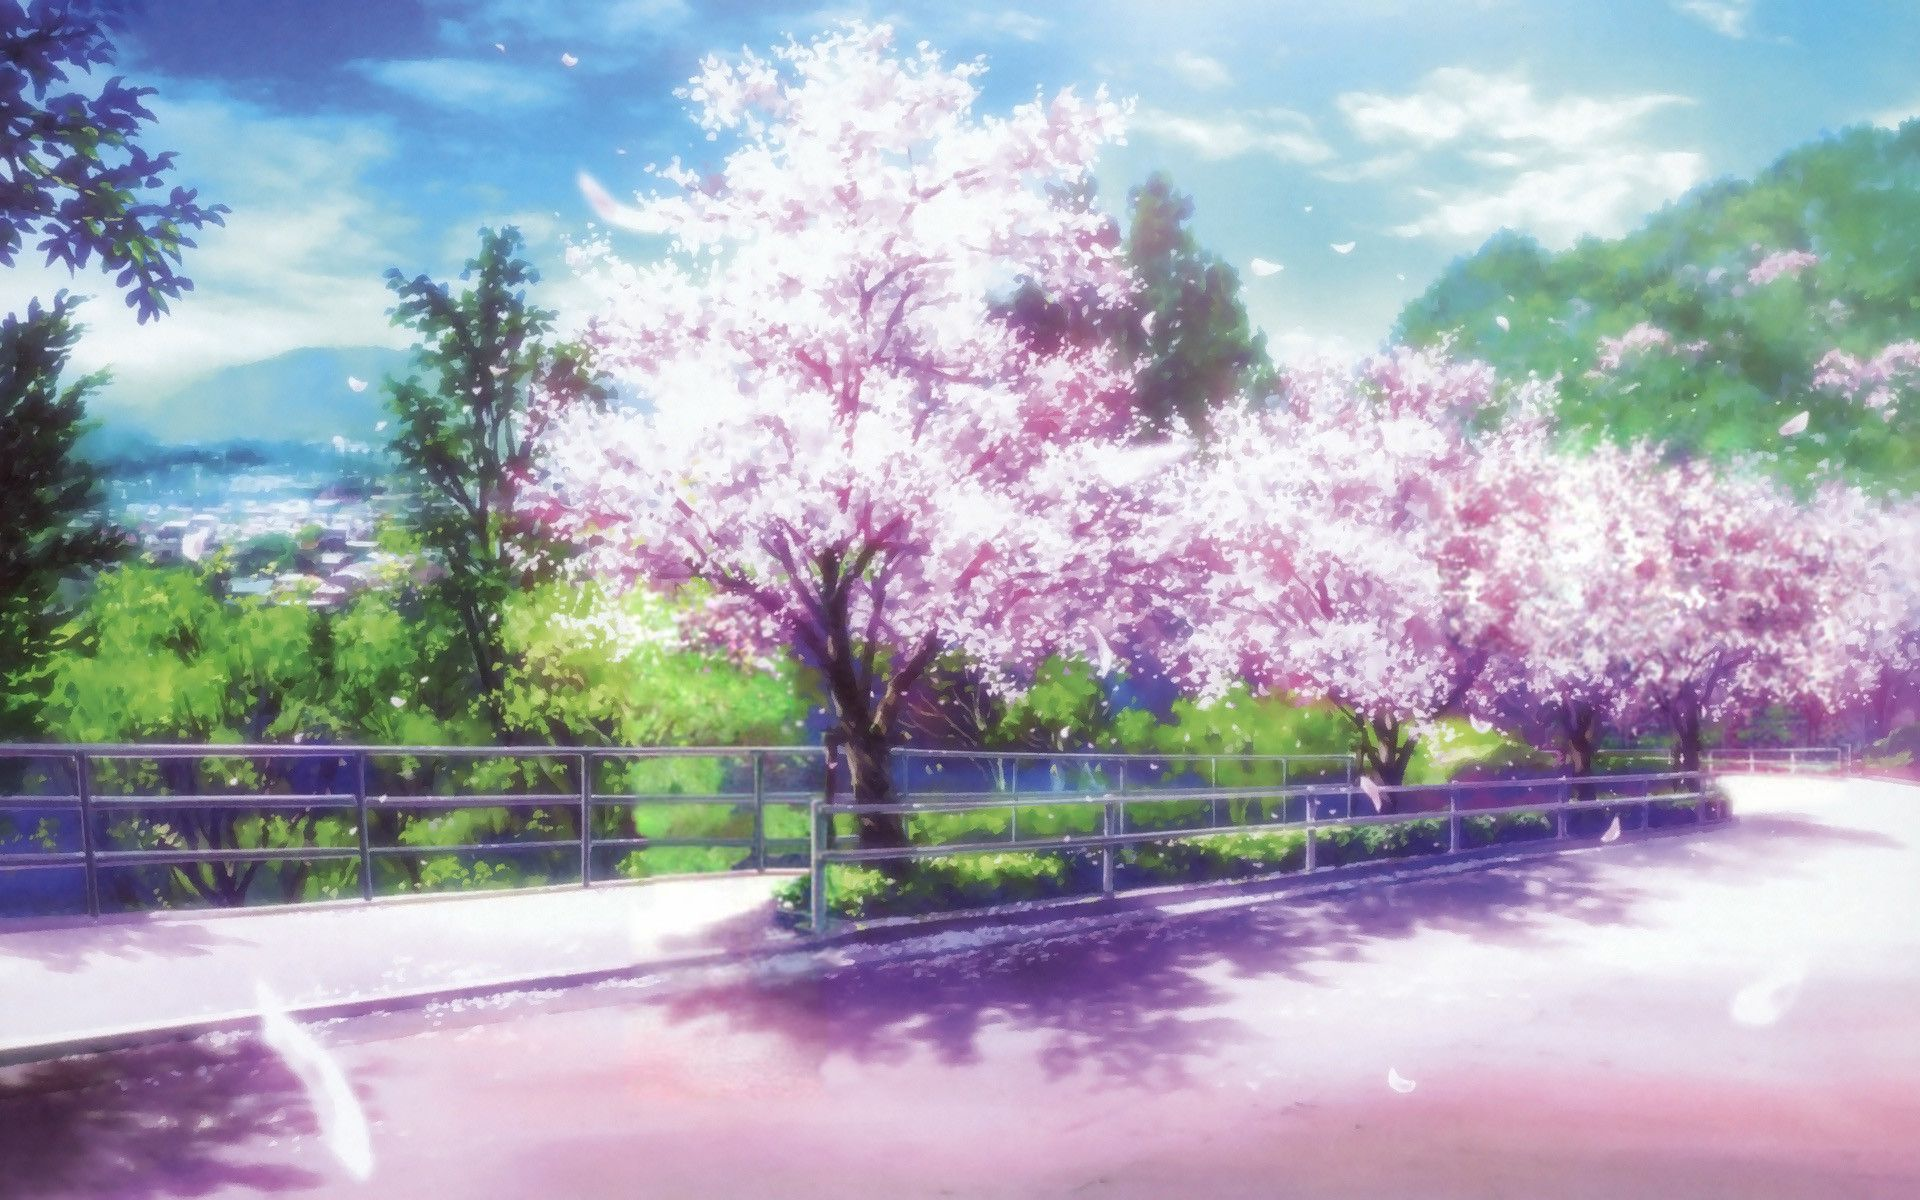 Top Cherry Blossom Background 1920x1200 Image Anime Backgrounds Wallpapers Anime Scenery Anime Background